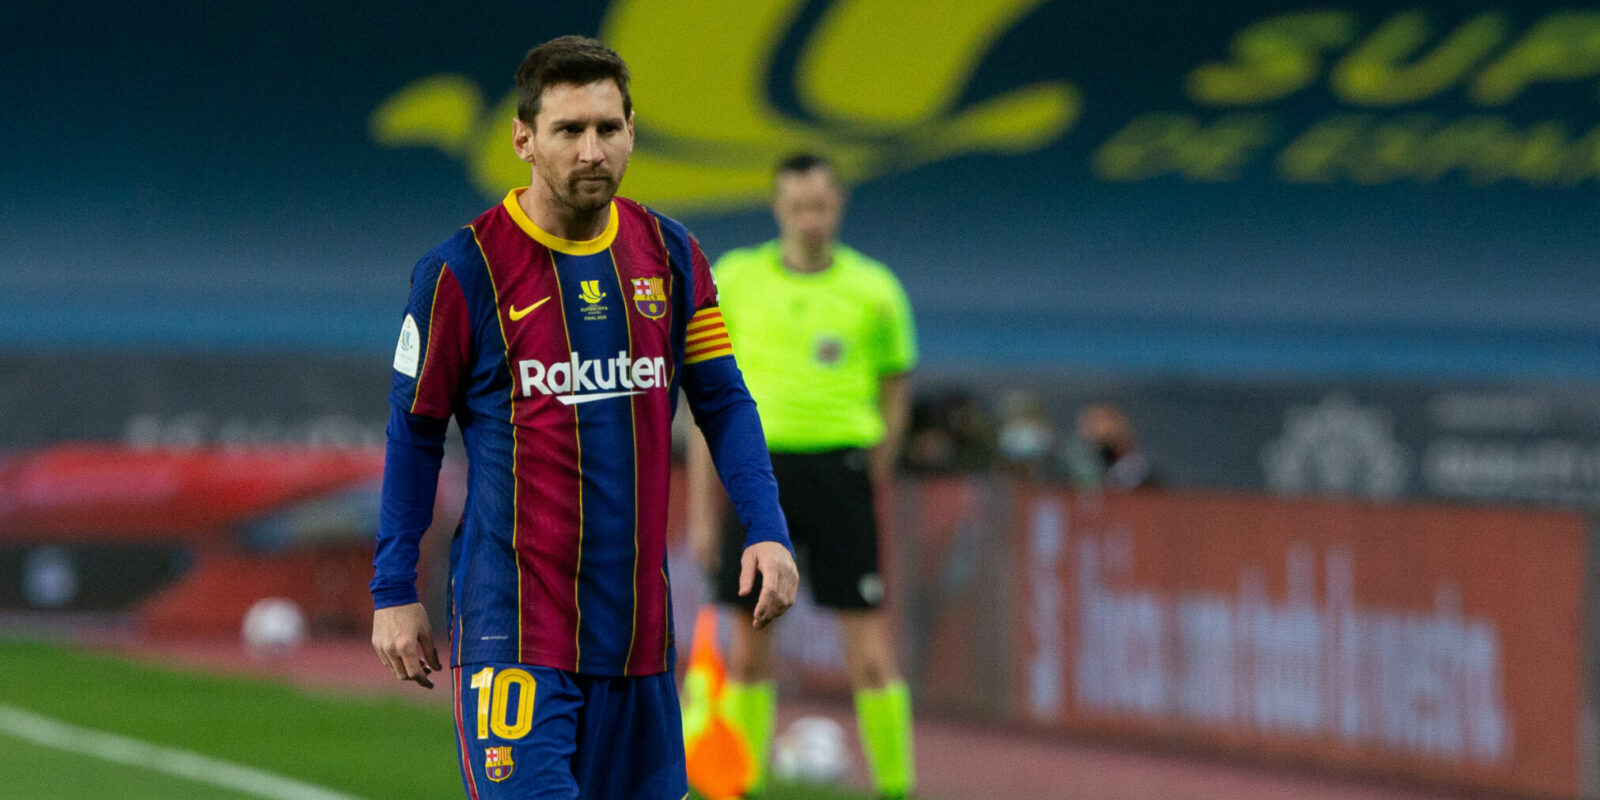 Lionel Messi of Barcelona during the Spanish SuperCup Final between Futbol Club Barcelona and Athletic Club Bilbao at La Cartuja Stadium on January 17, 2021 in Sevilla, Spain. AFP7  / Europa Press 17/1/2021 ONLY FOR USE IN SPAIN